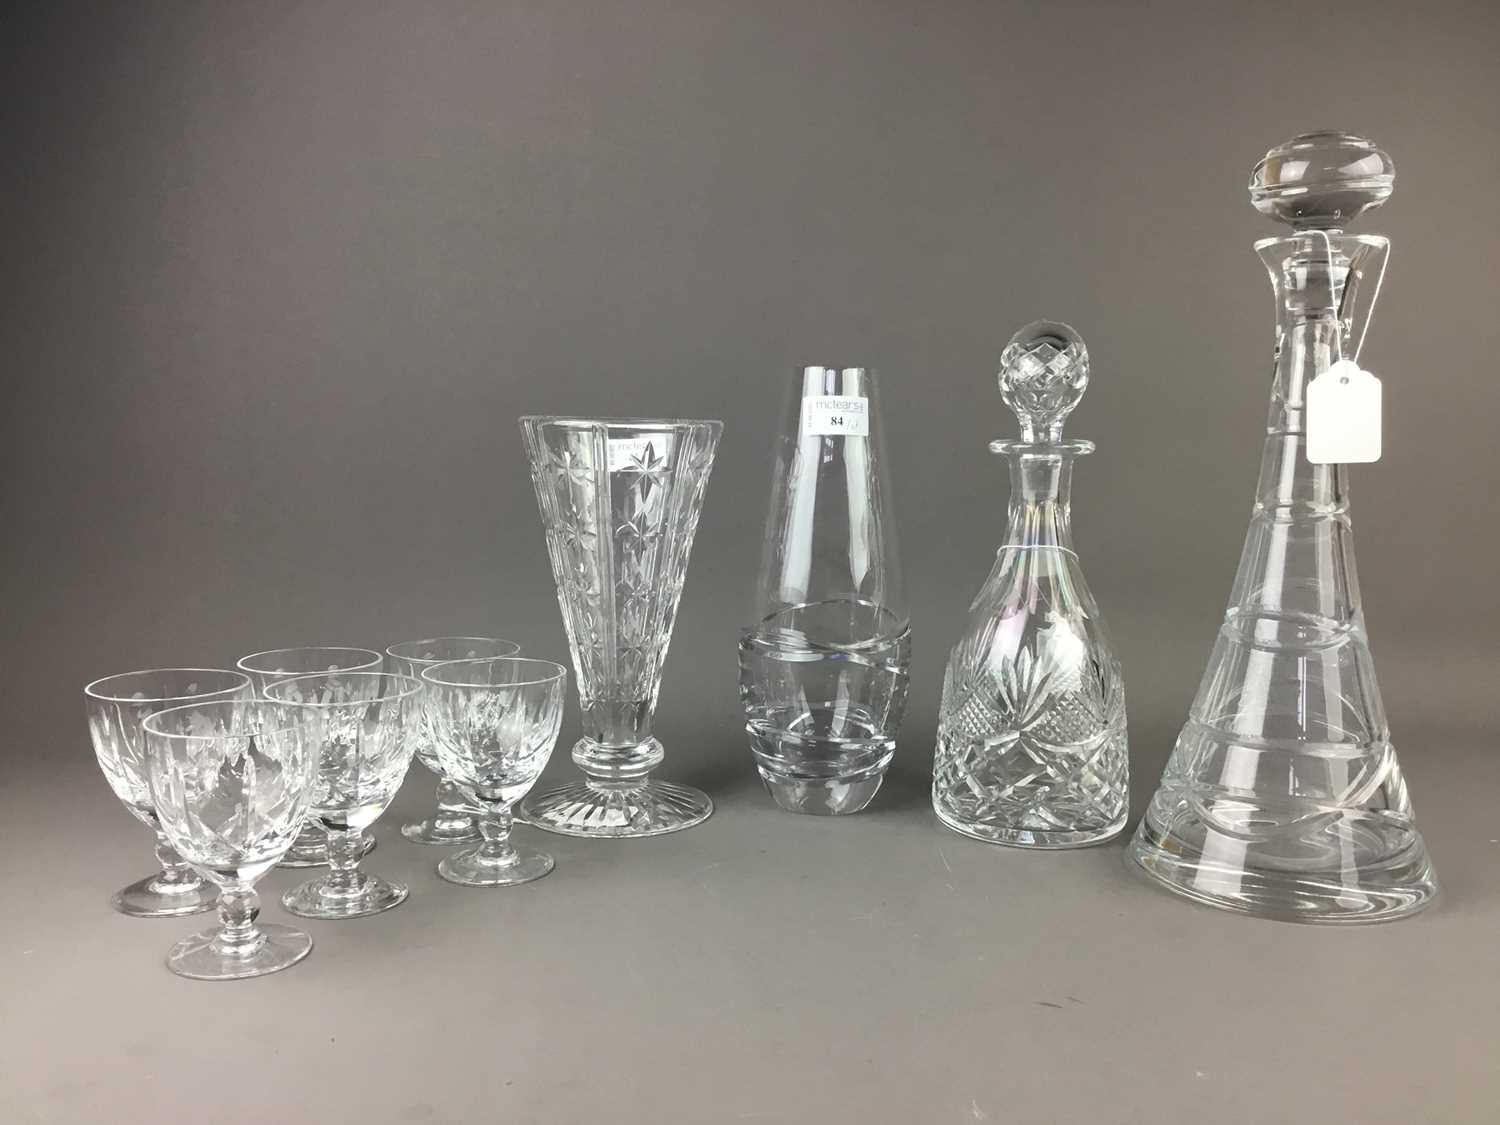 Lot A SET OF SIX ROYAL BRIERLEY CRYSTAL LIQUER GLASSES ALONG WITH TWO DECANTERS AND OTHER CRYSTAL WARE